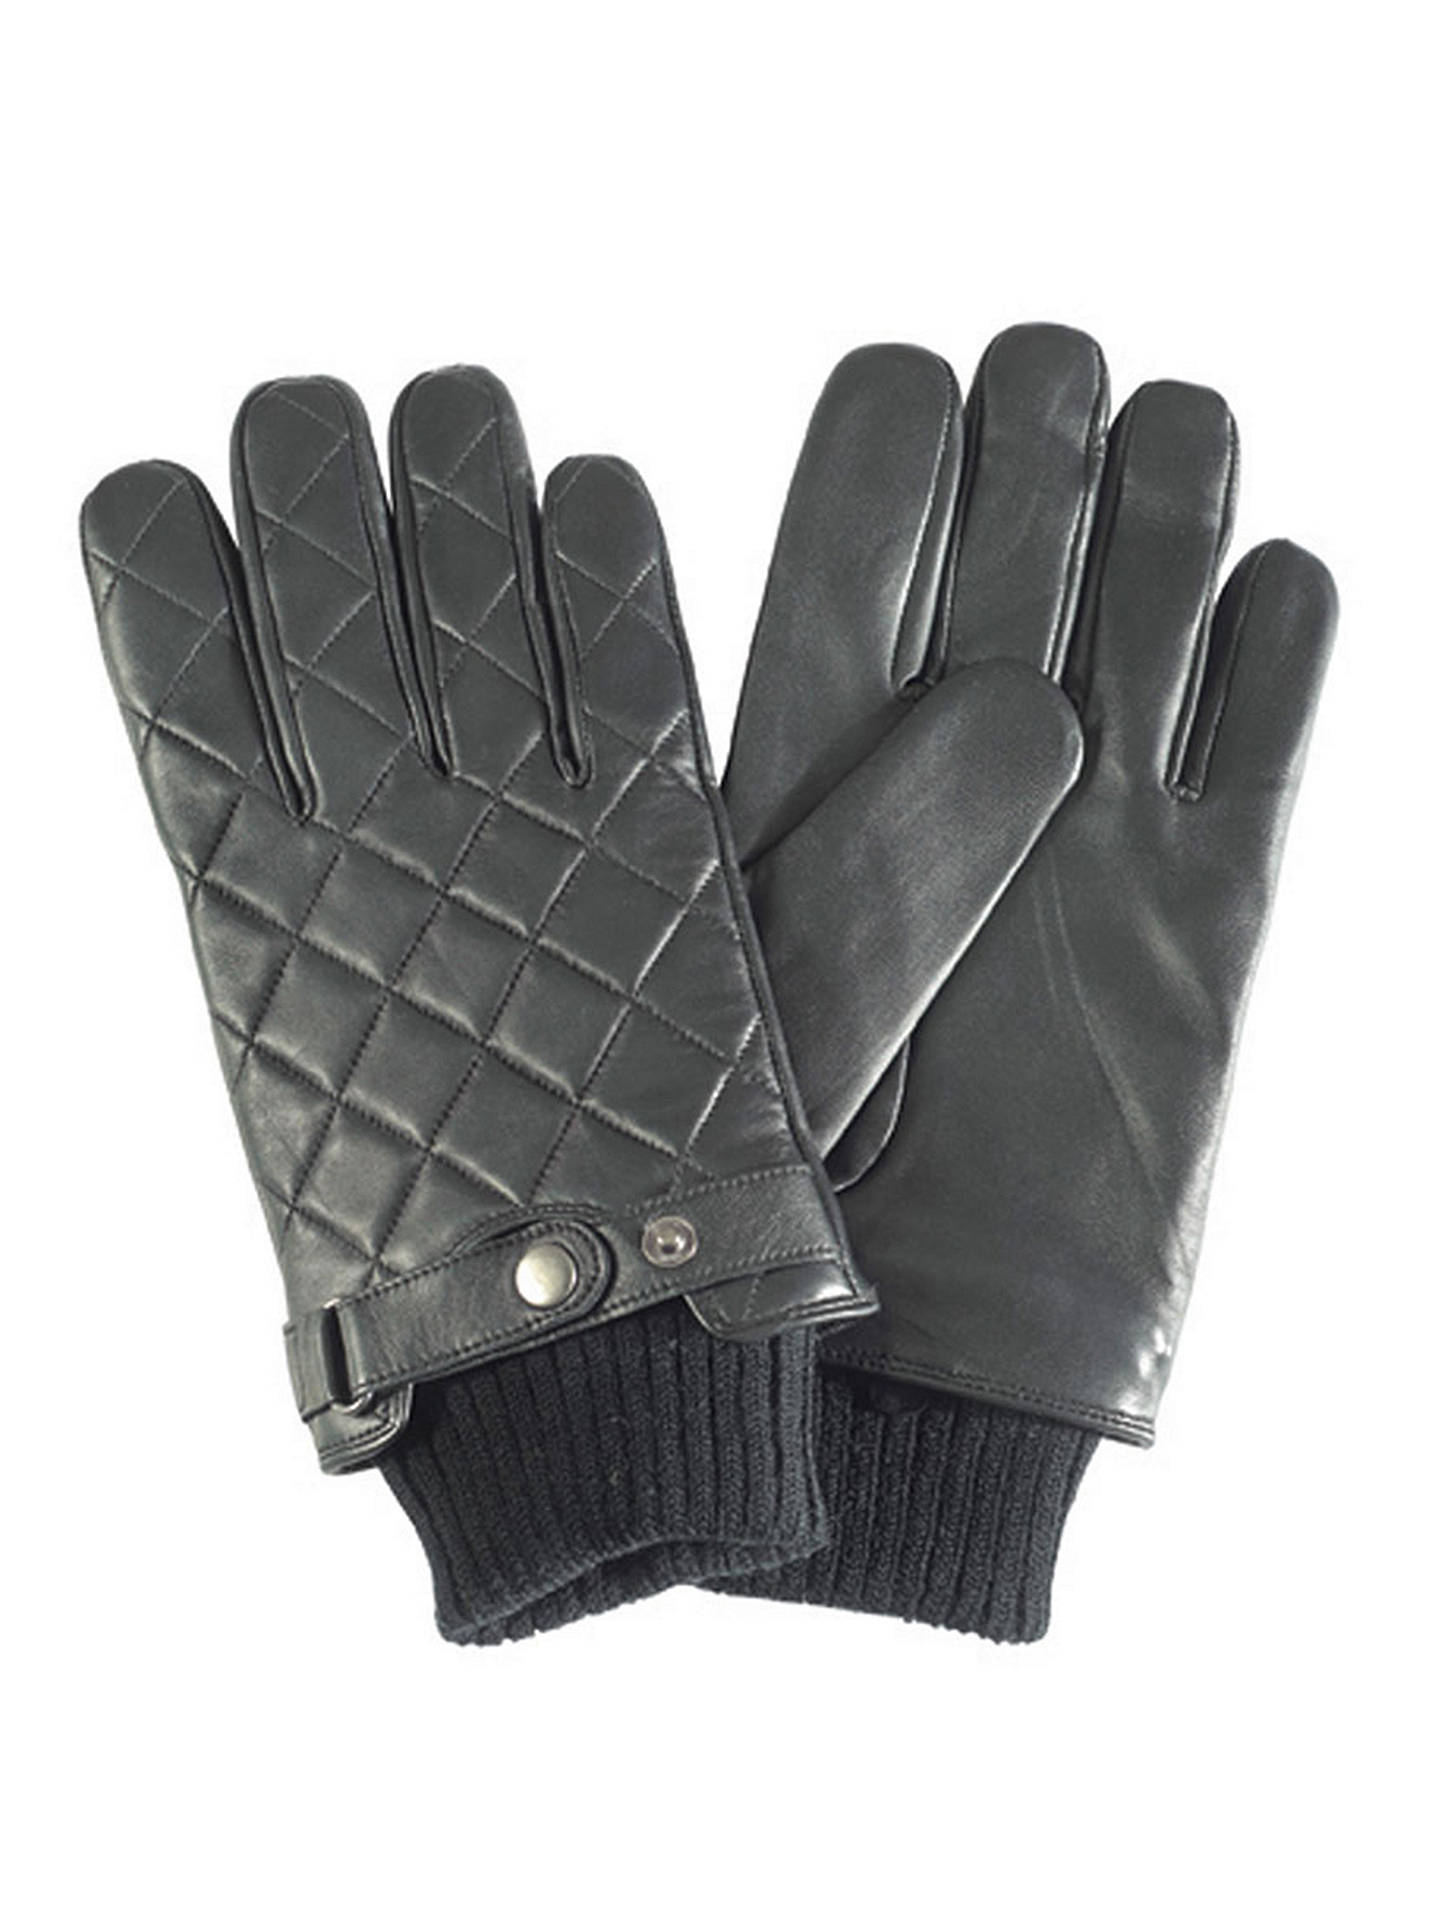 BuyBarbour Quilted Leather Gloves, Black, L Online at johnlewis.com